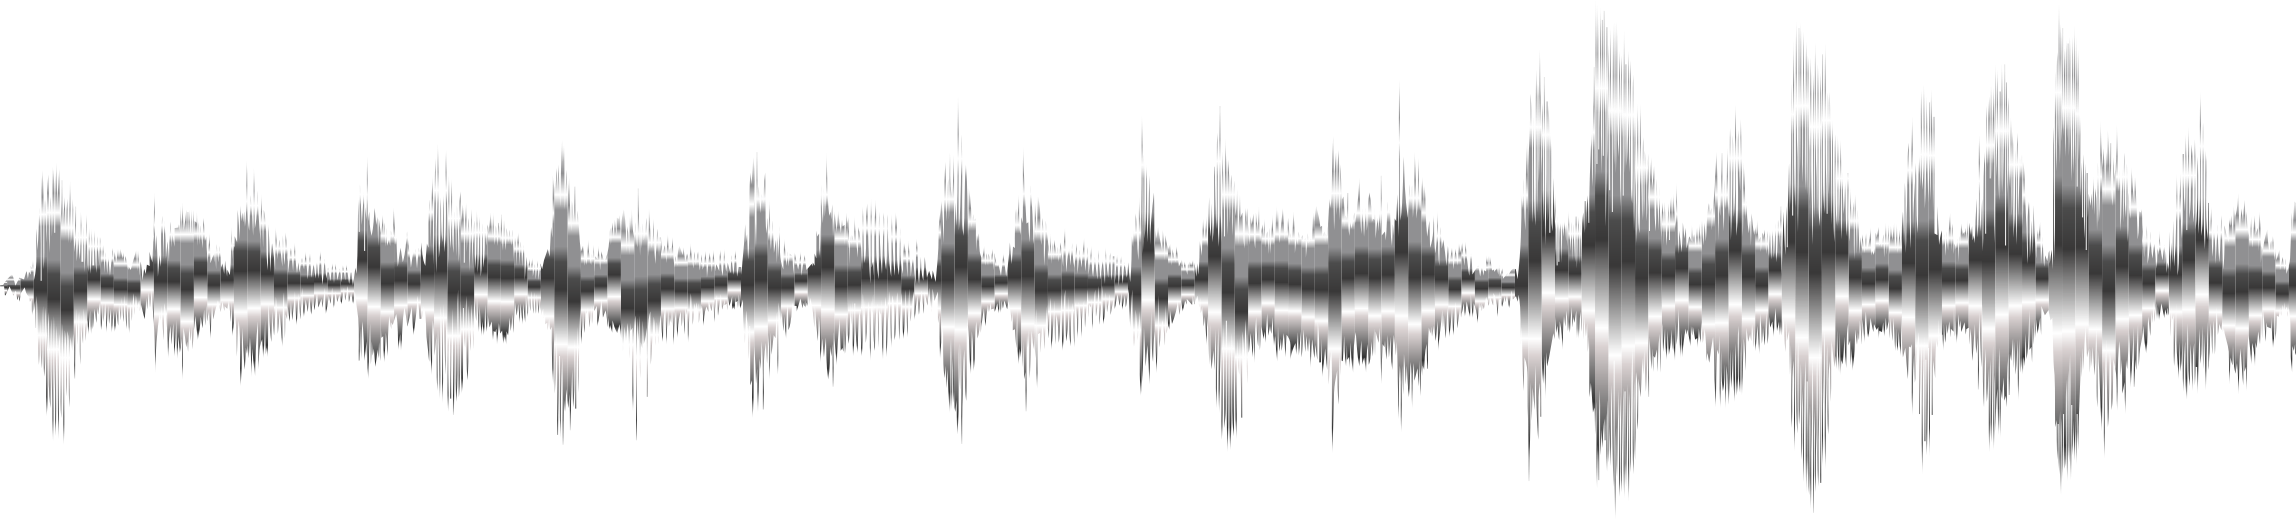 Sound wave transparent png. Stainless steel no background